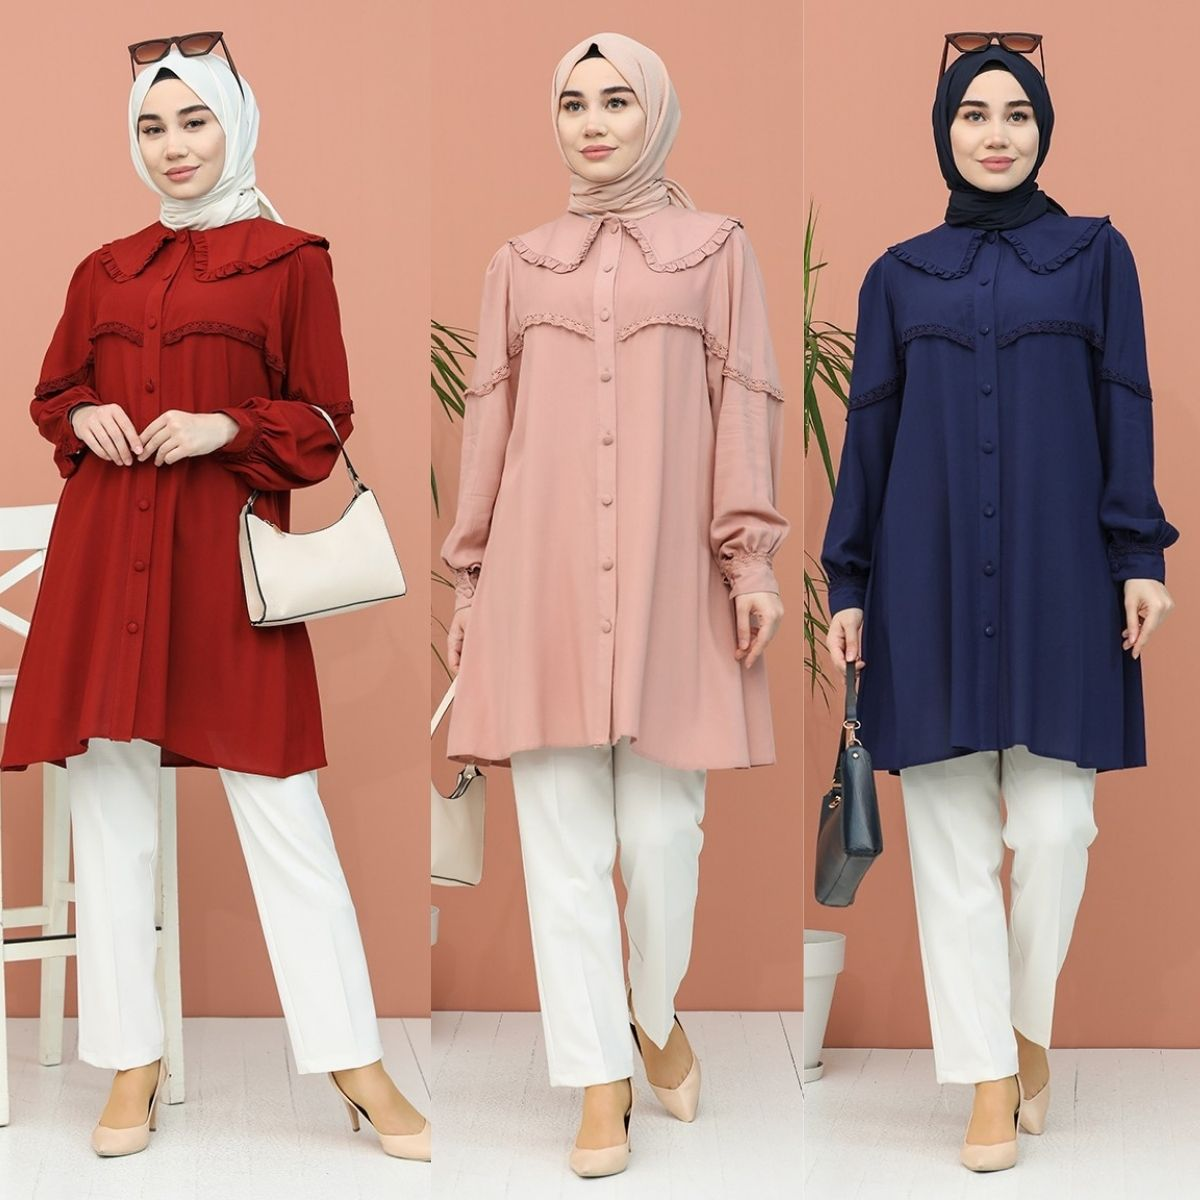 Lace Detailed Tunic Long Buttoned Sleeves Polyester Fabric Plain Unlined Casual Hijap Zero Collar 4 Season Women Muslim Fashion